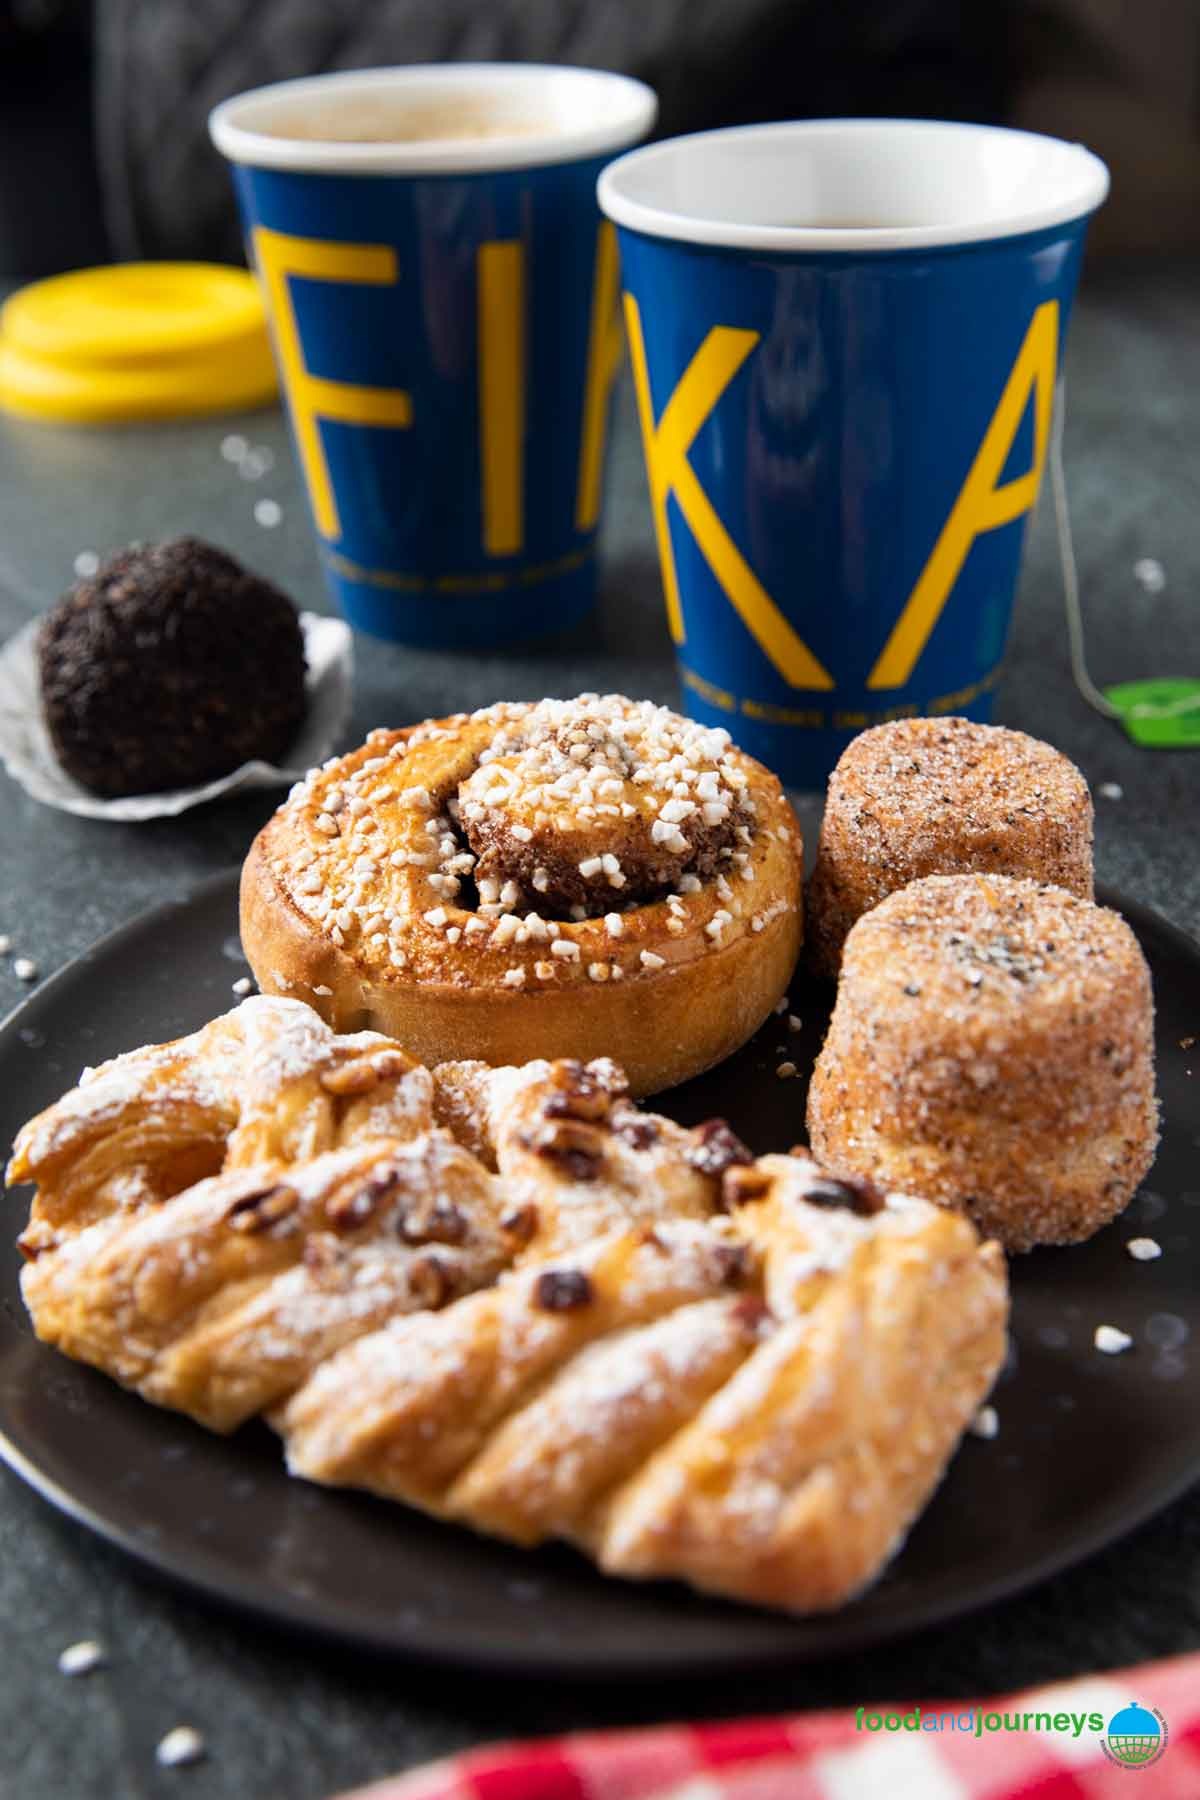 A plate of mixed Swedish treats, served with coffee and tea; for a typical Swedish fika.